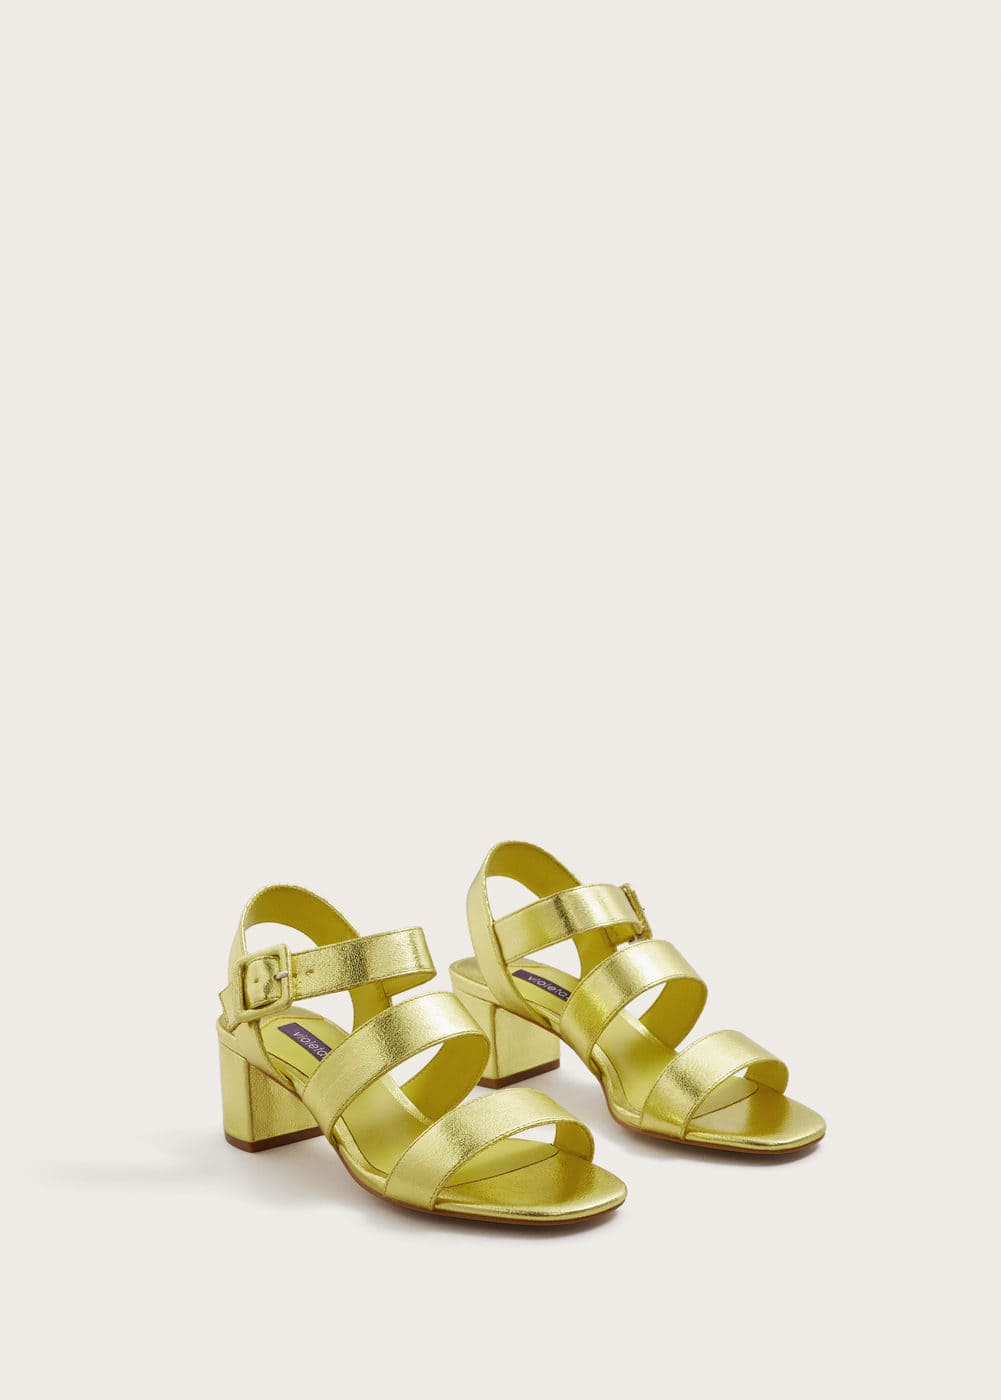 Metallic strap sandals | VIOLETA BY MANGO